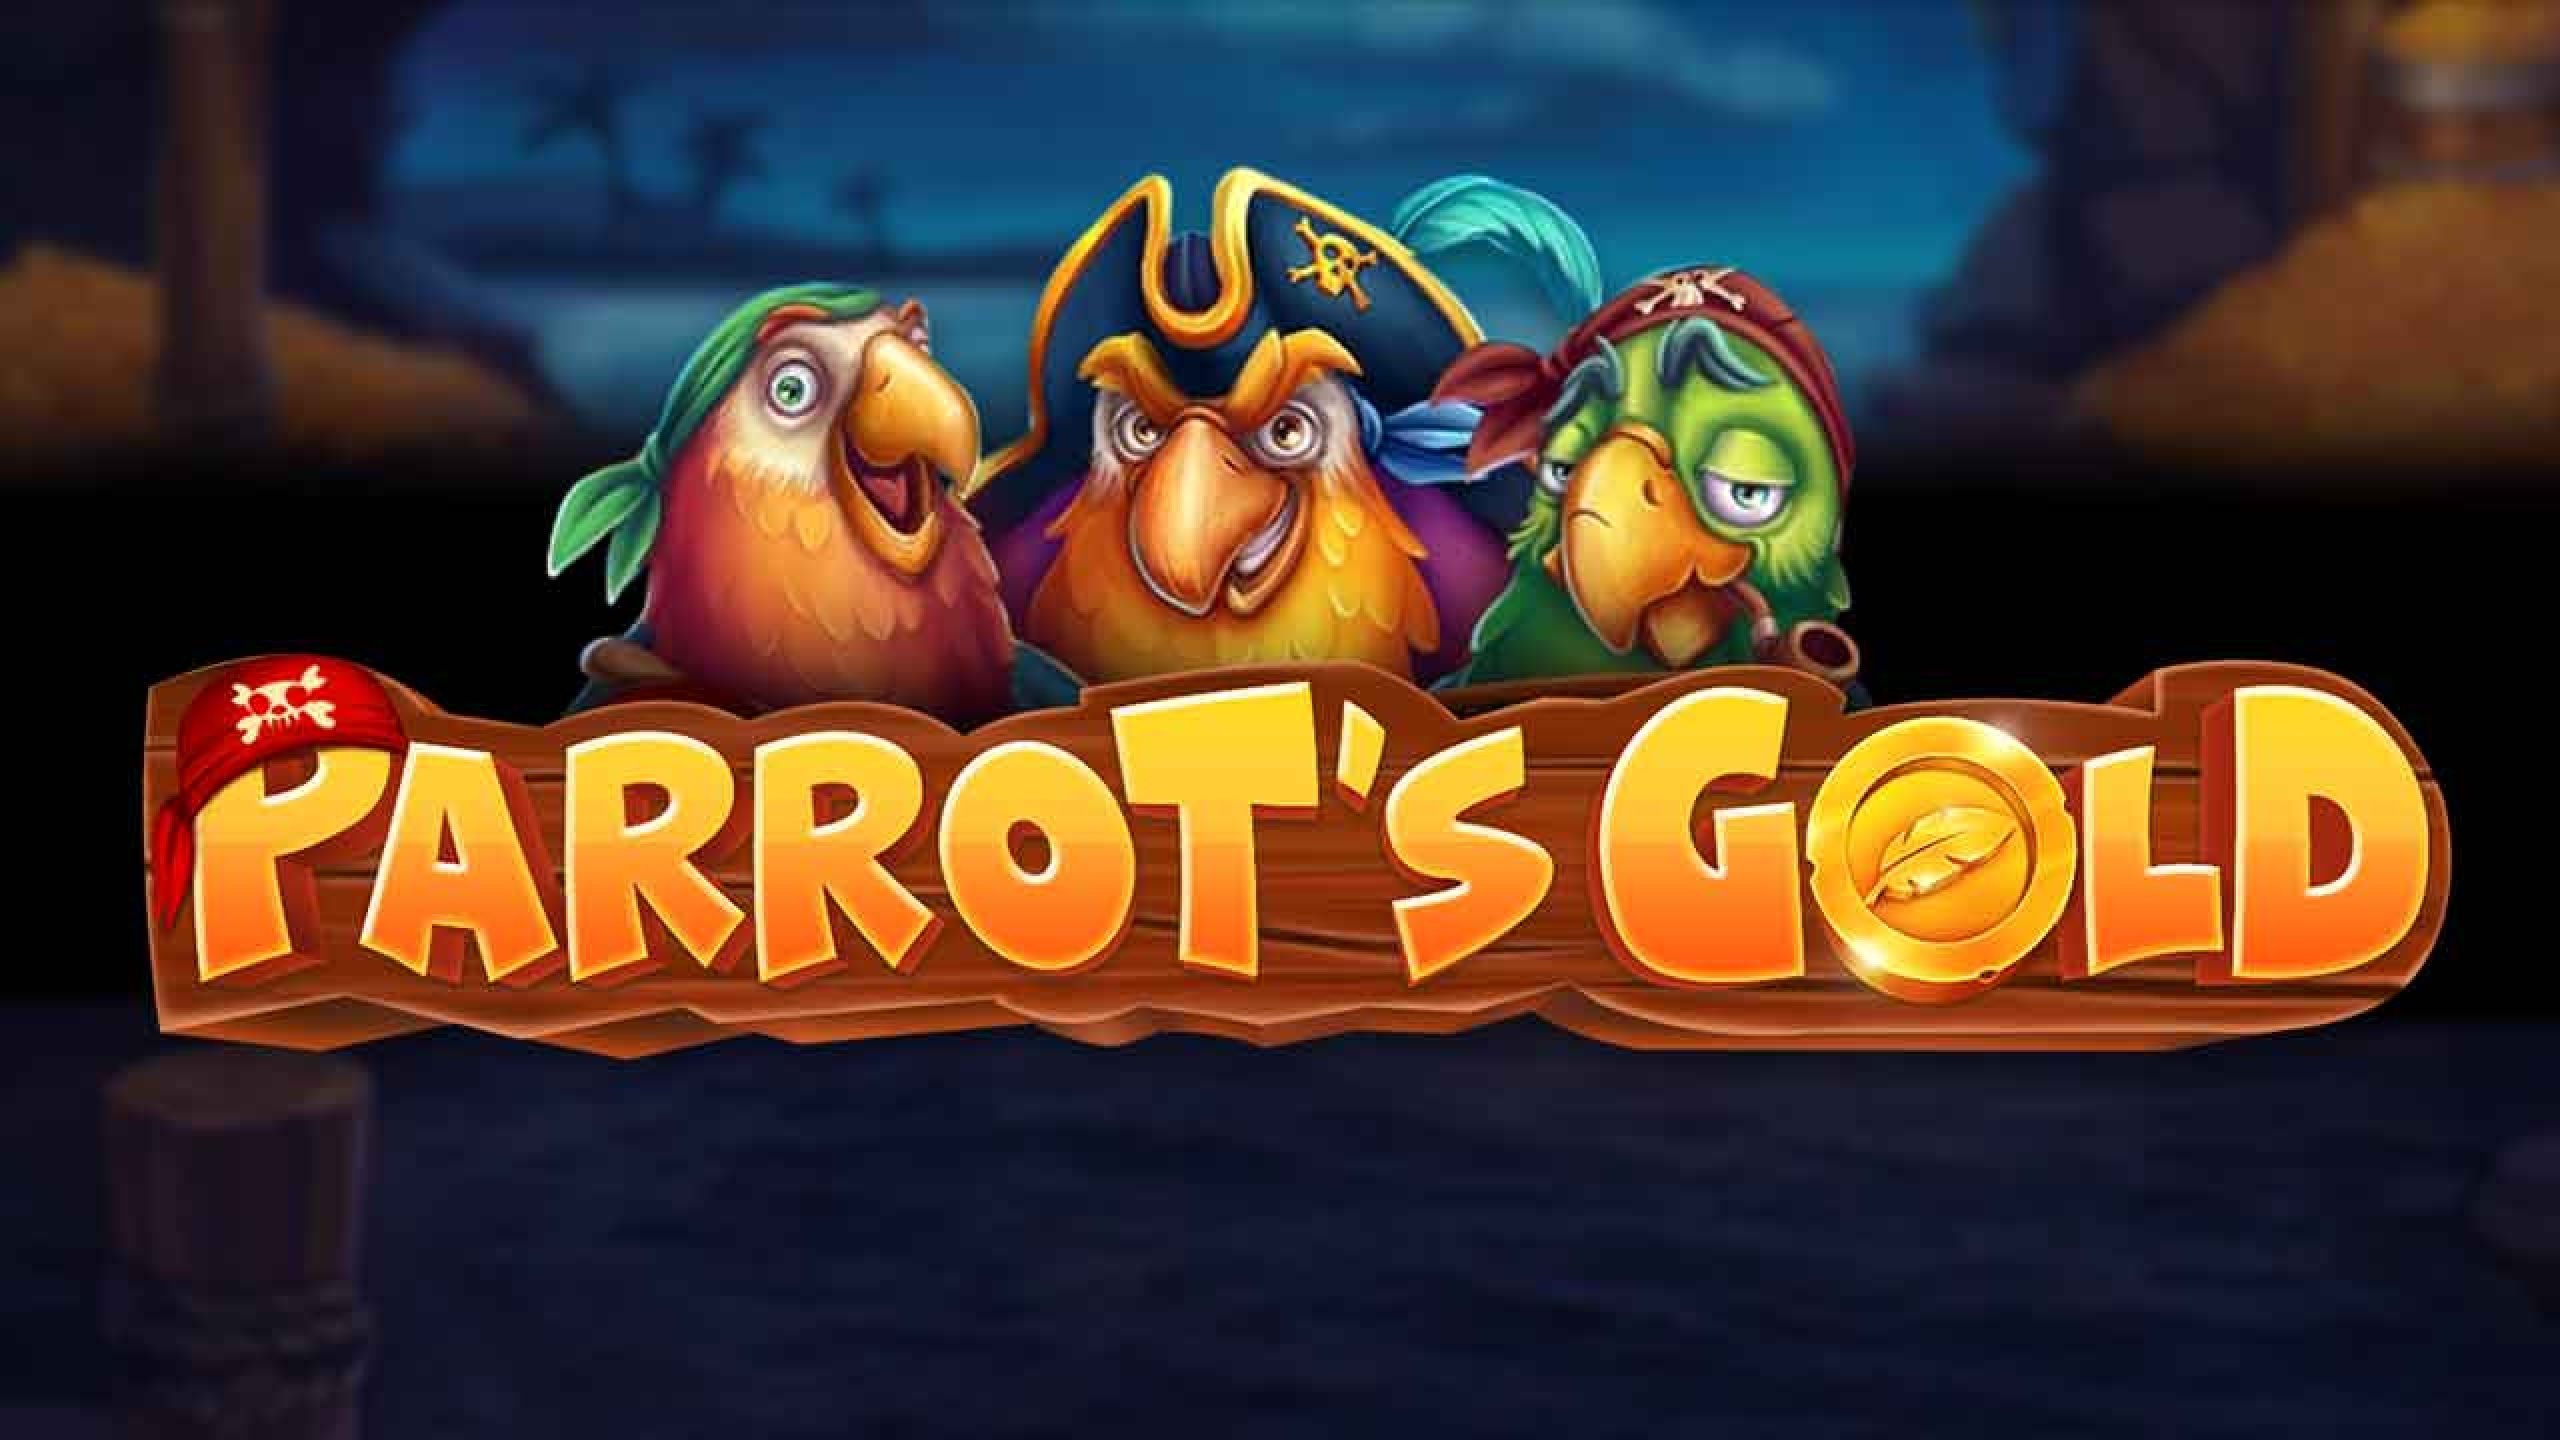 Parrot's Gold Online Slot Demo Game by PariPlay